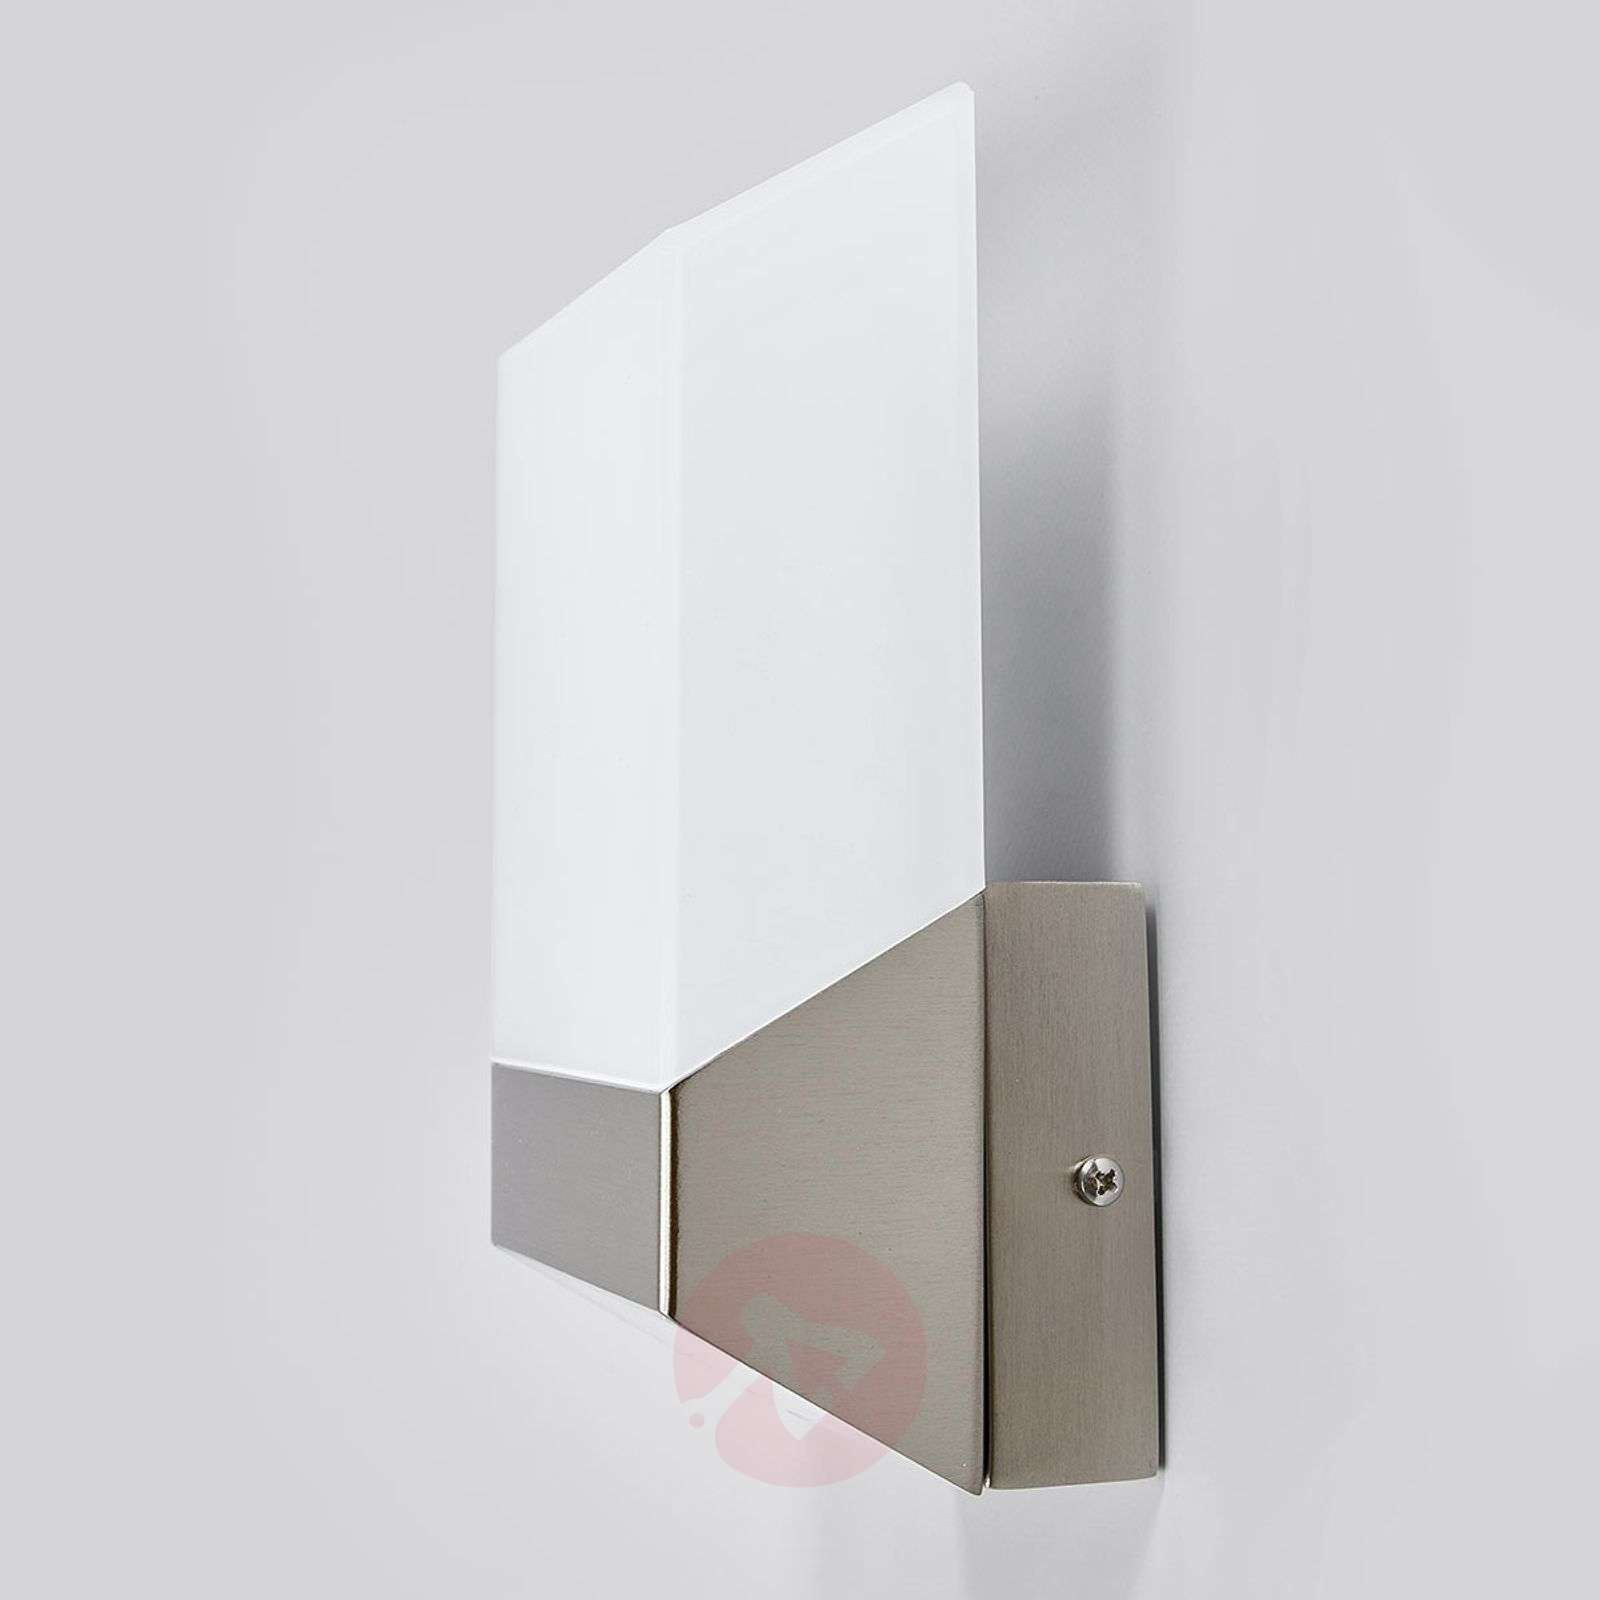 Modern Flat LED outdoor wall light stainless steel-3006327-01